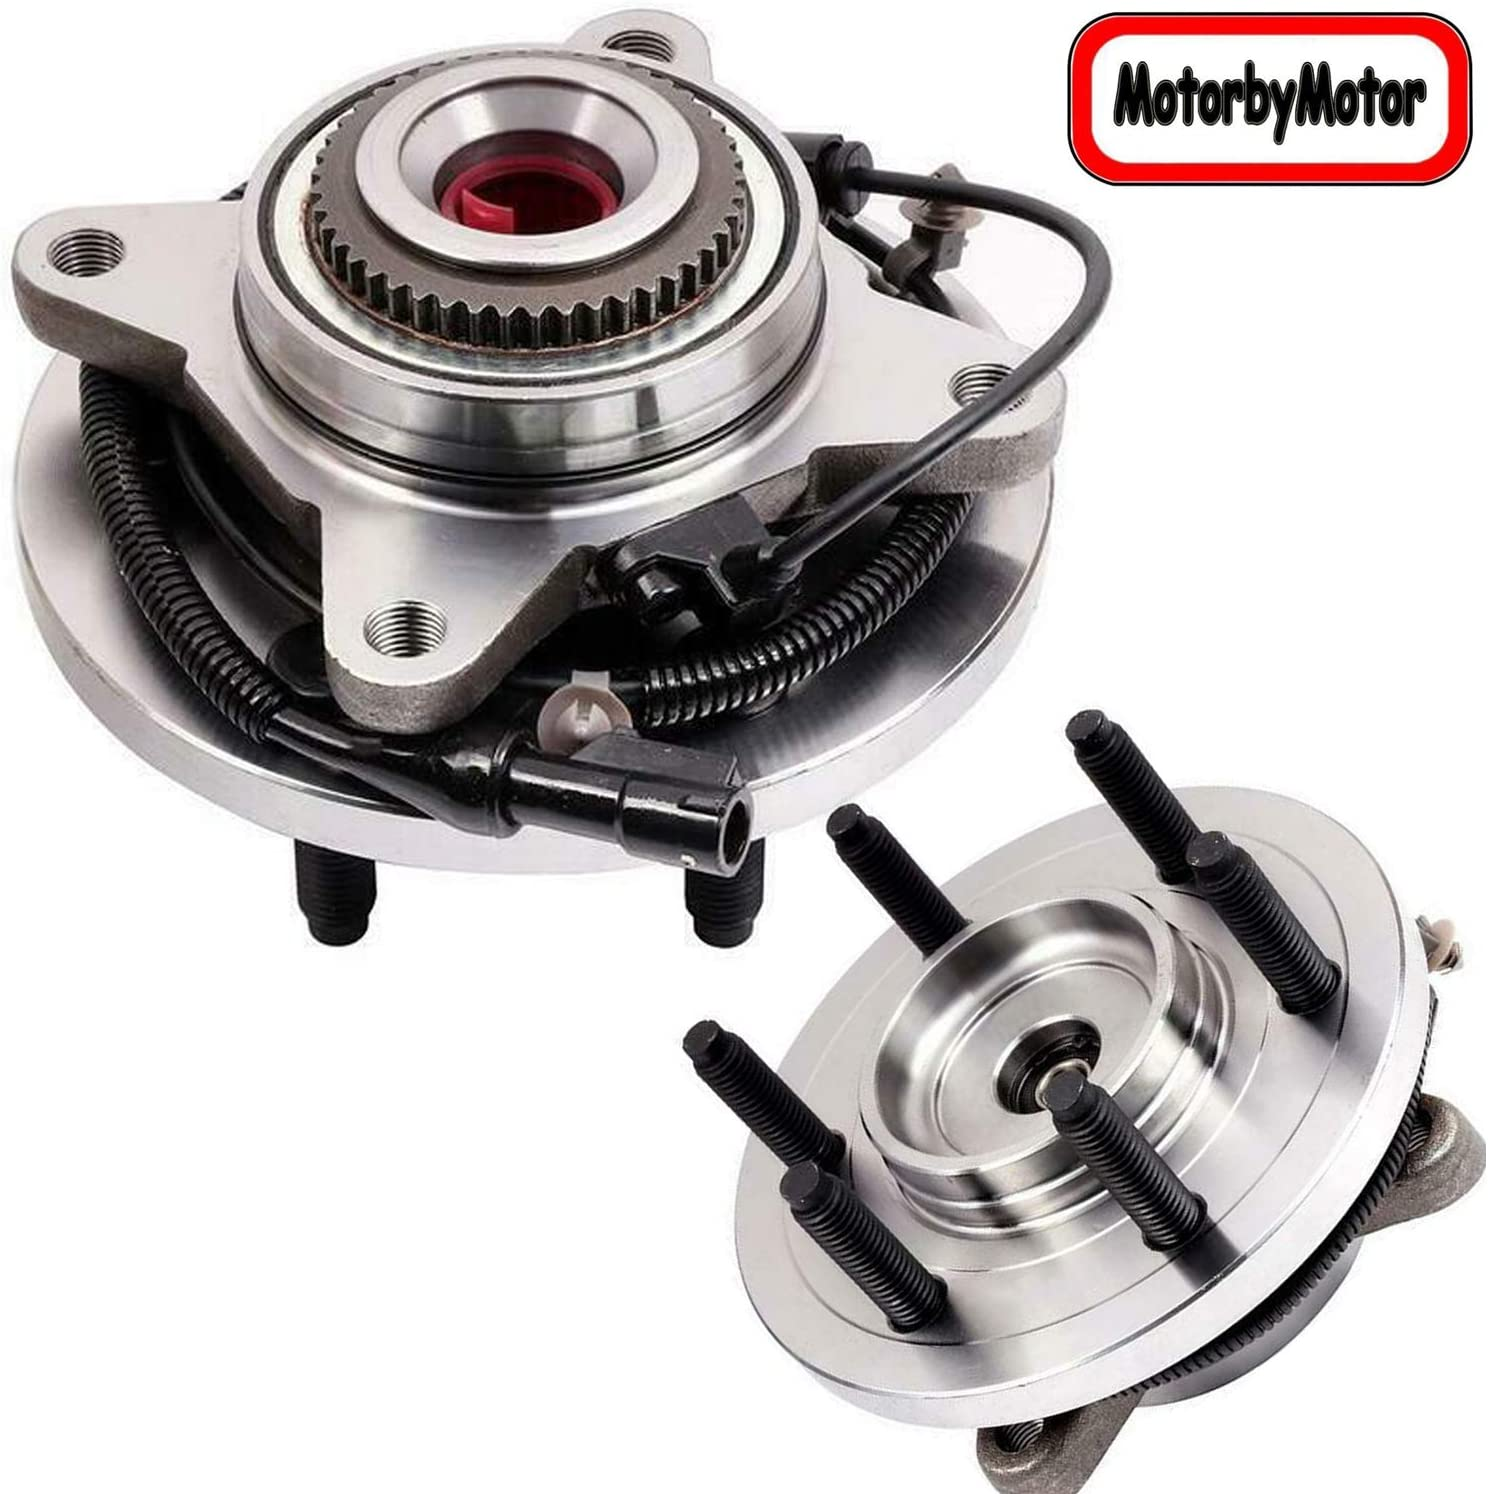 515119 Pair 2 Front Wheel Hub /& Bearing Assembly for 2009-2010 FORD F-150 4WD; Excluding Heavy Duty Payload Models Bodeman